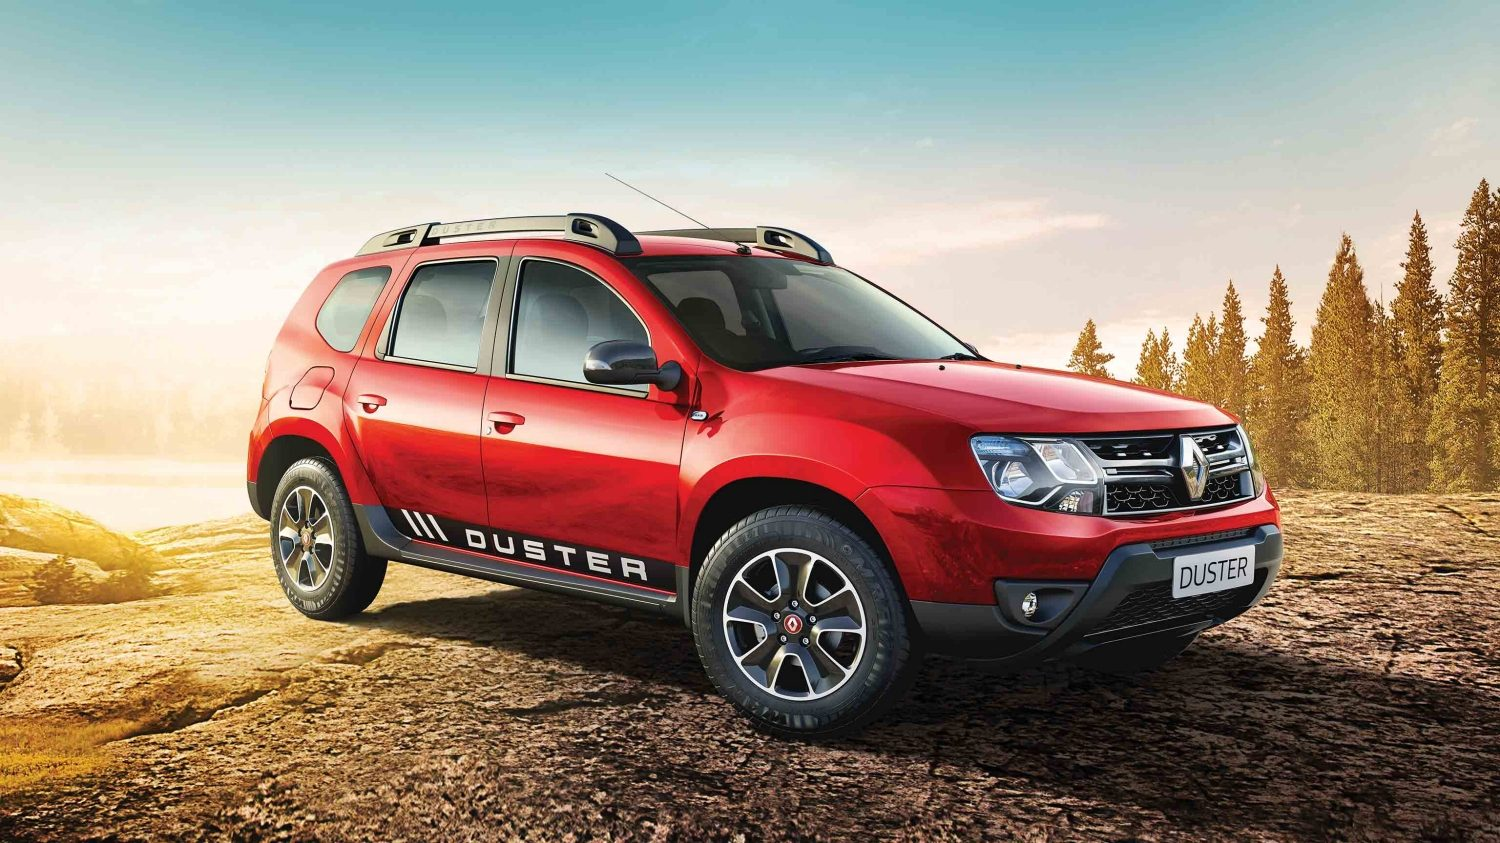 Renault Duster Prices Slashed Up To Inr 100 000 Carspiritpk